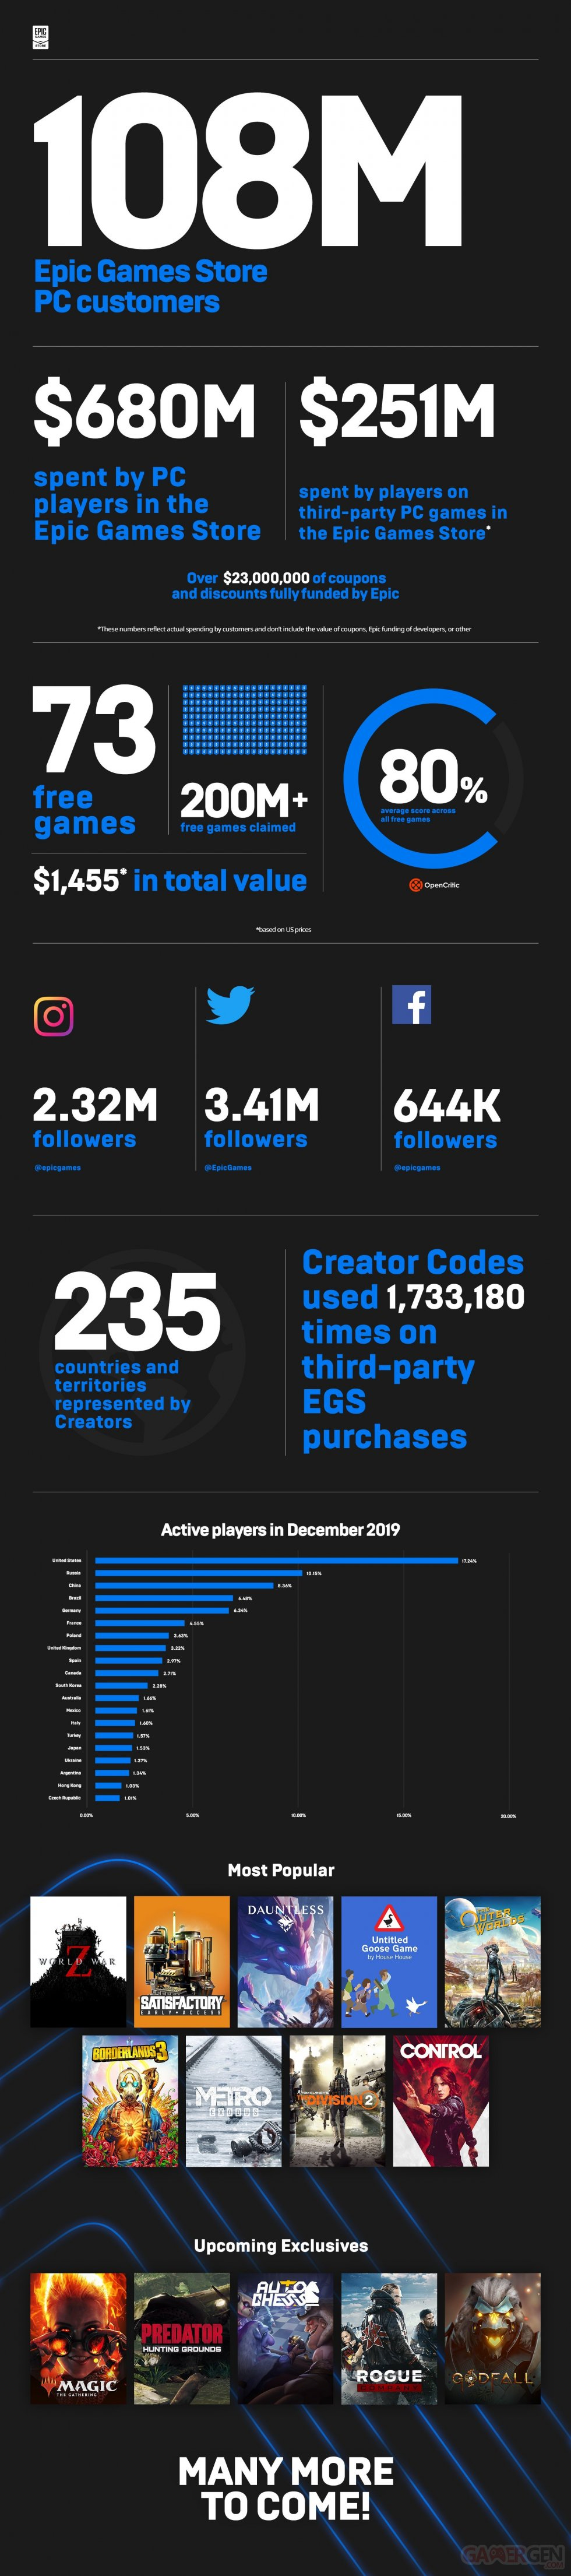 epic-games-store-egs-infographic-overview